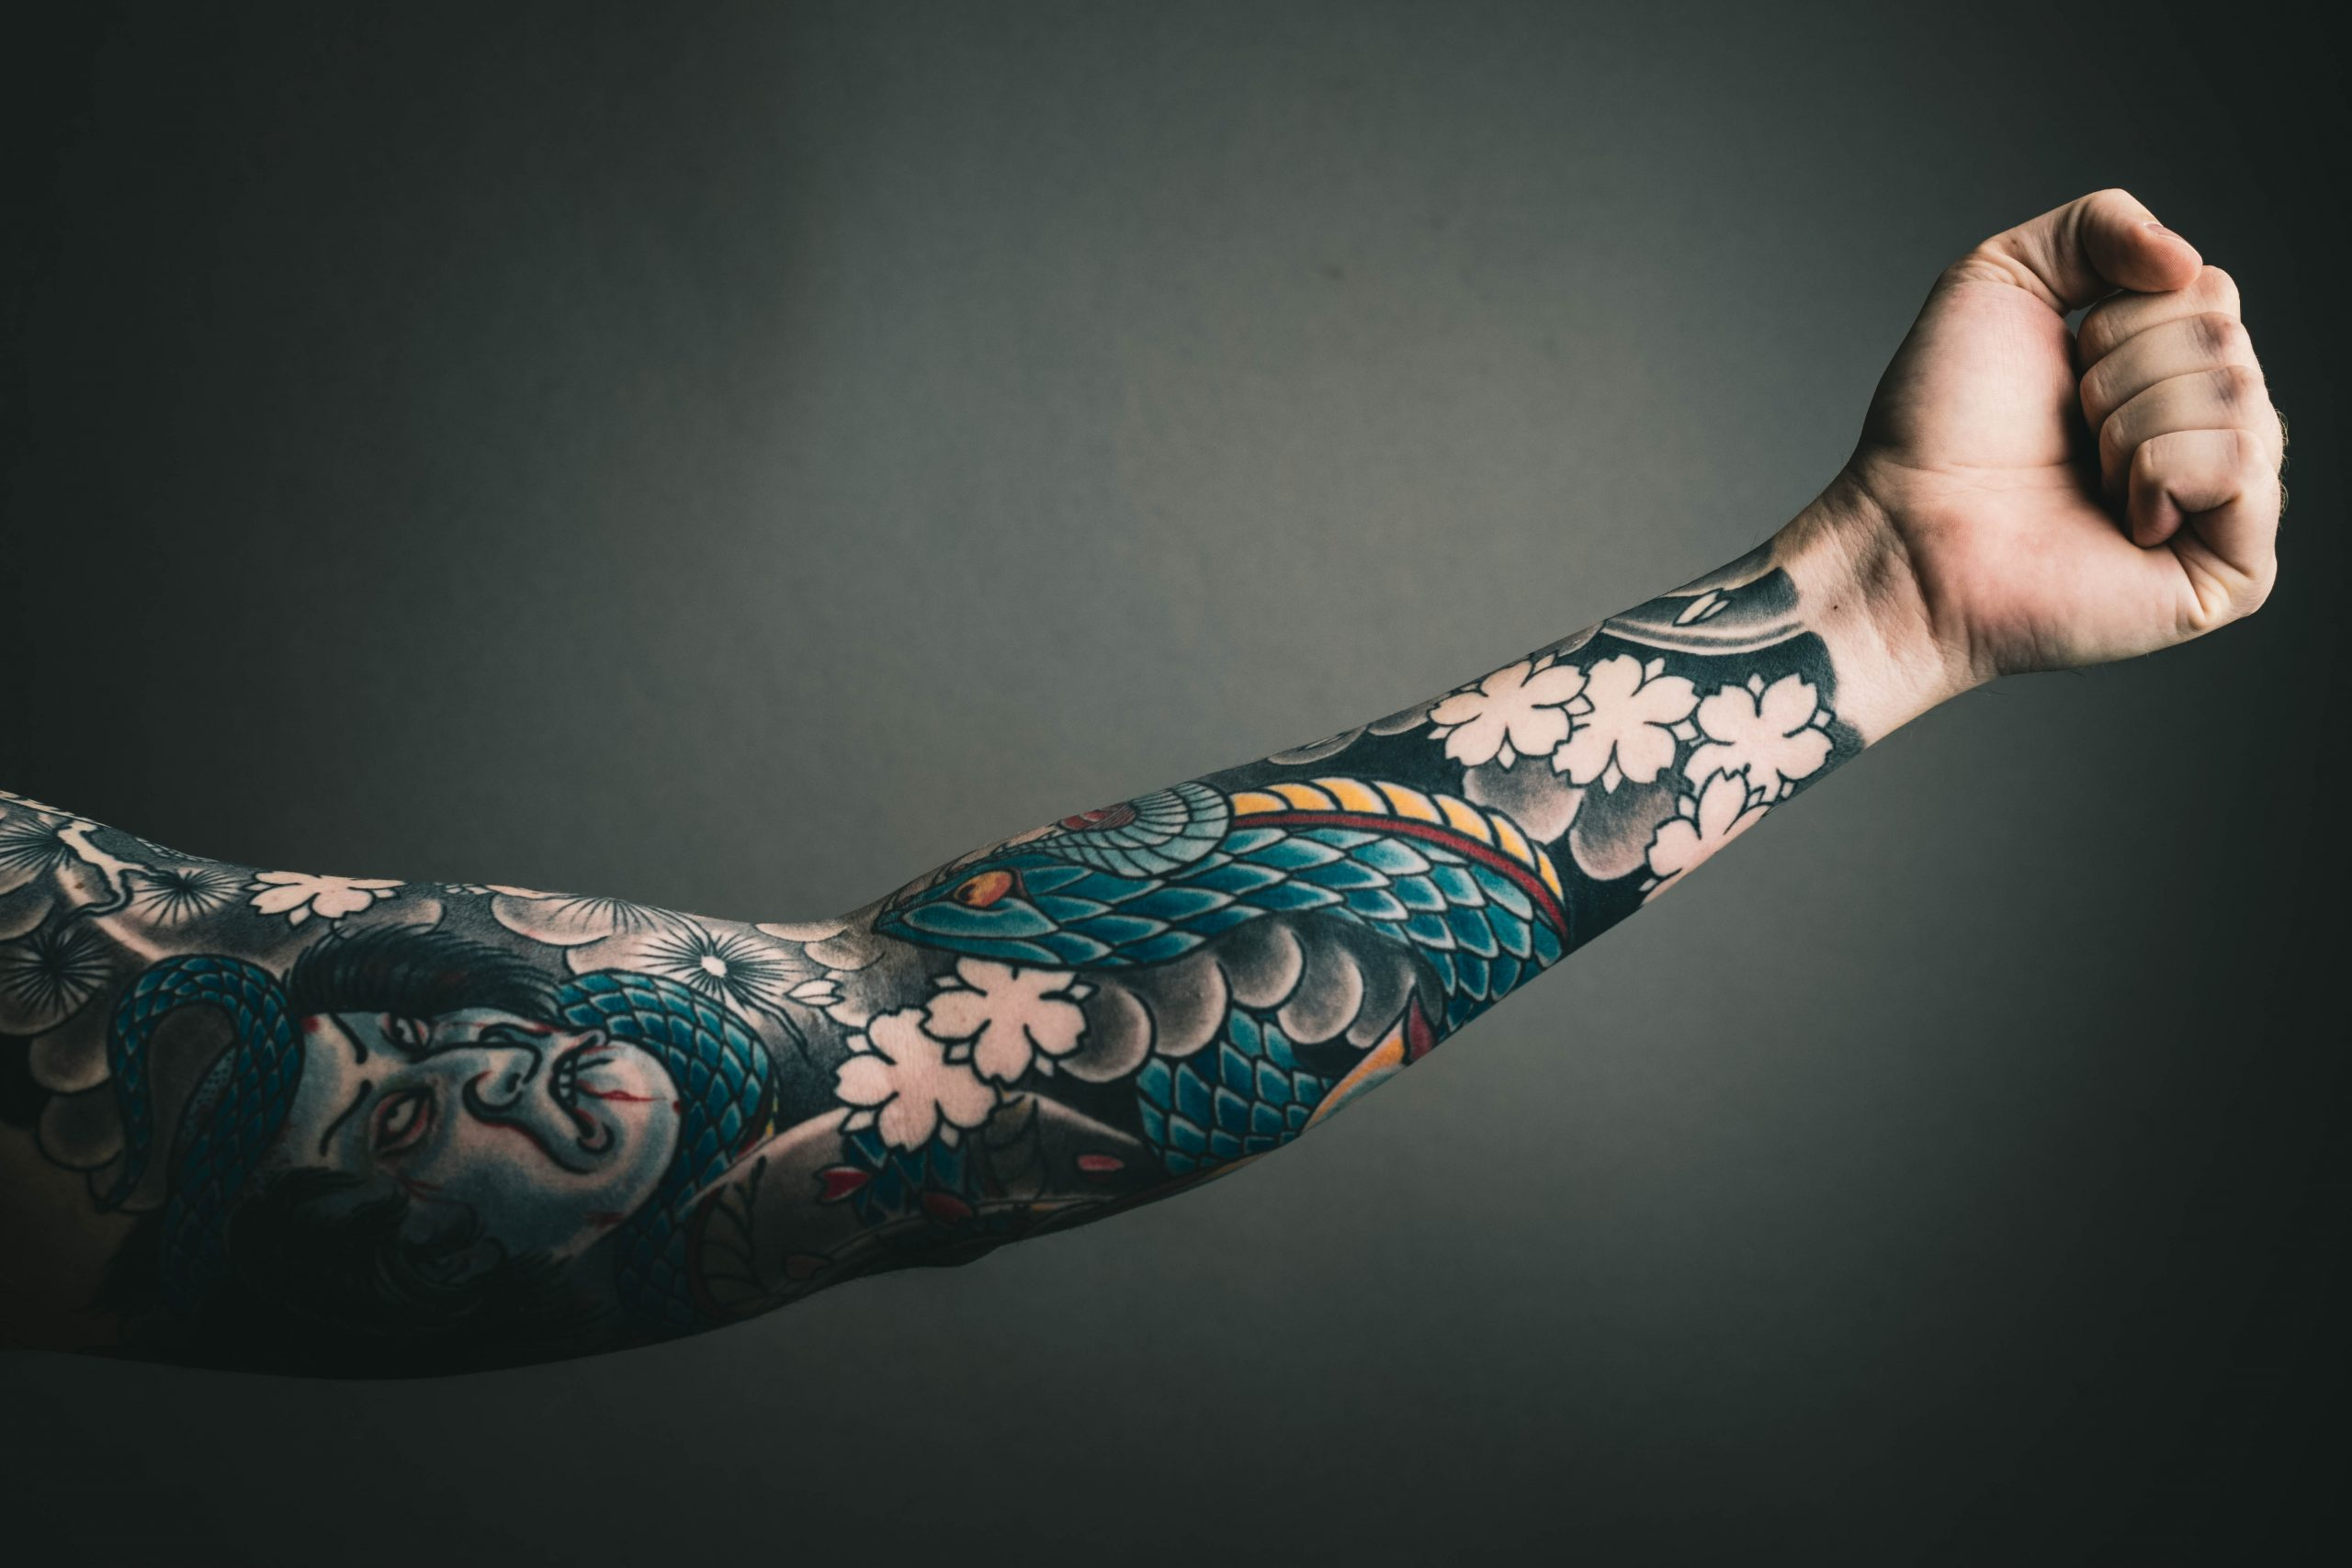 Art and Science: The Dermatology Behind Tattoos